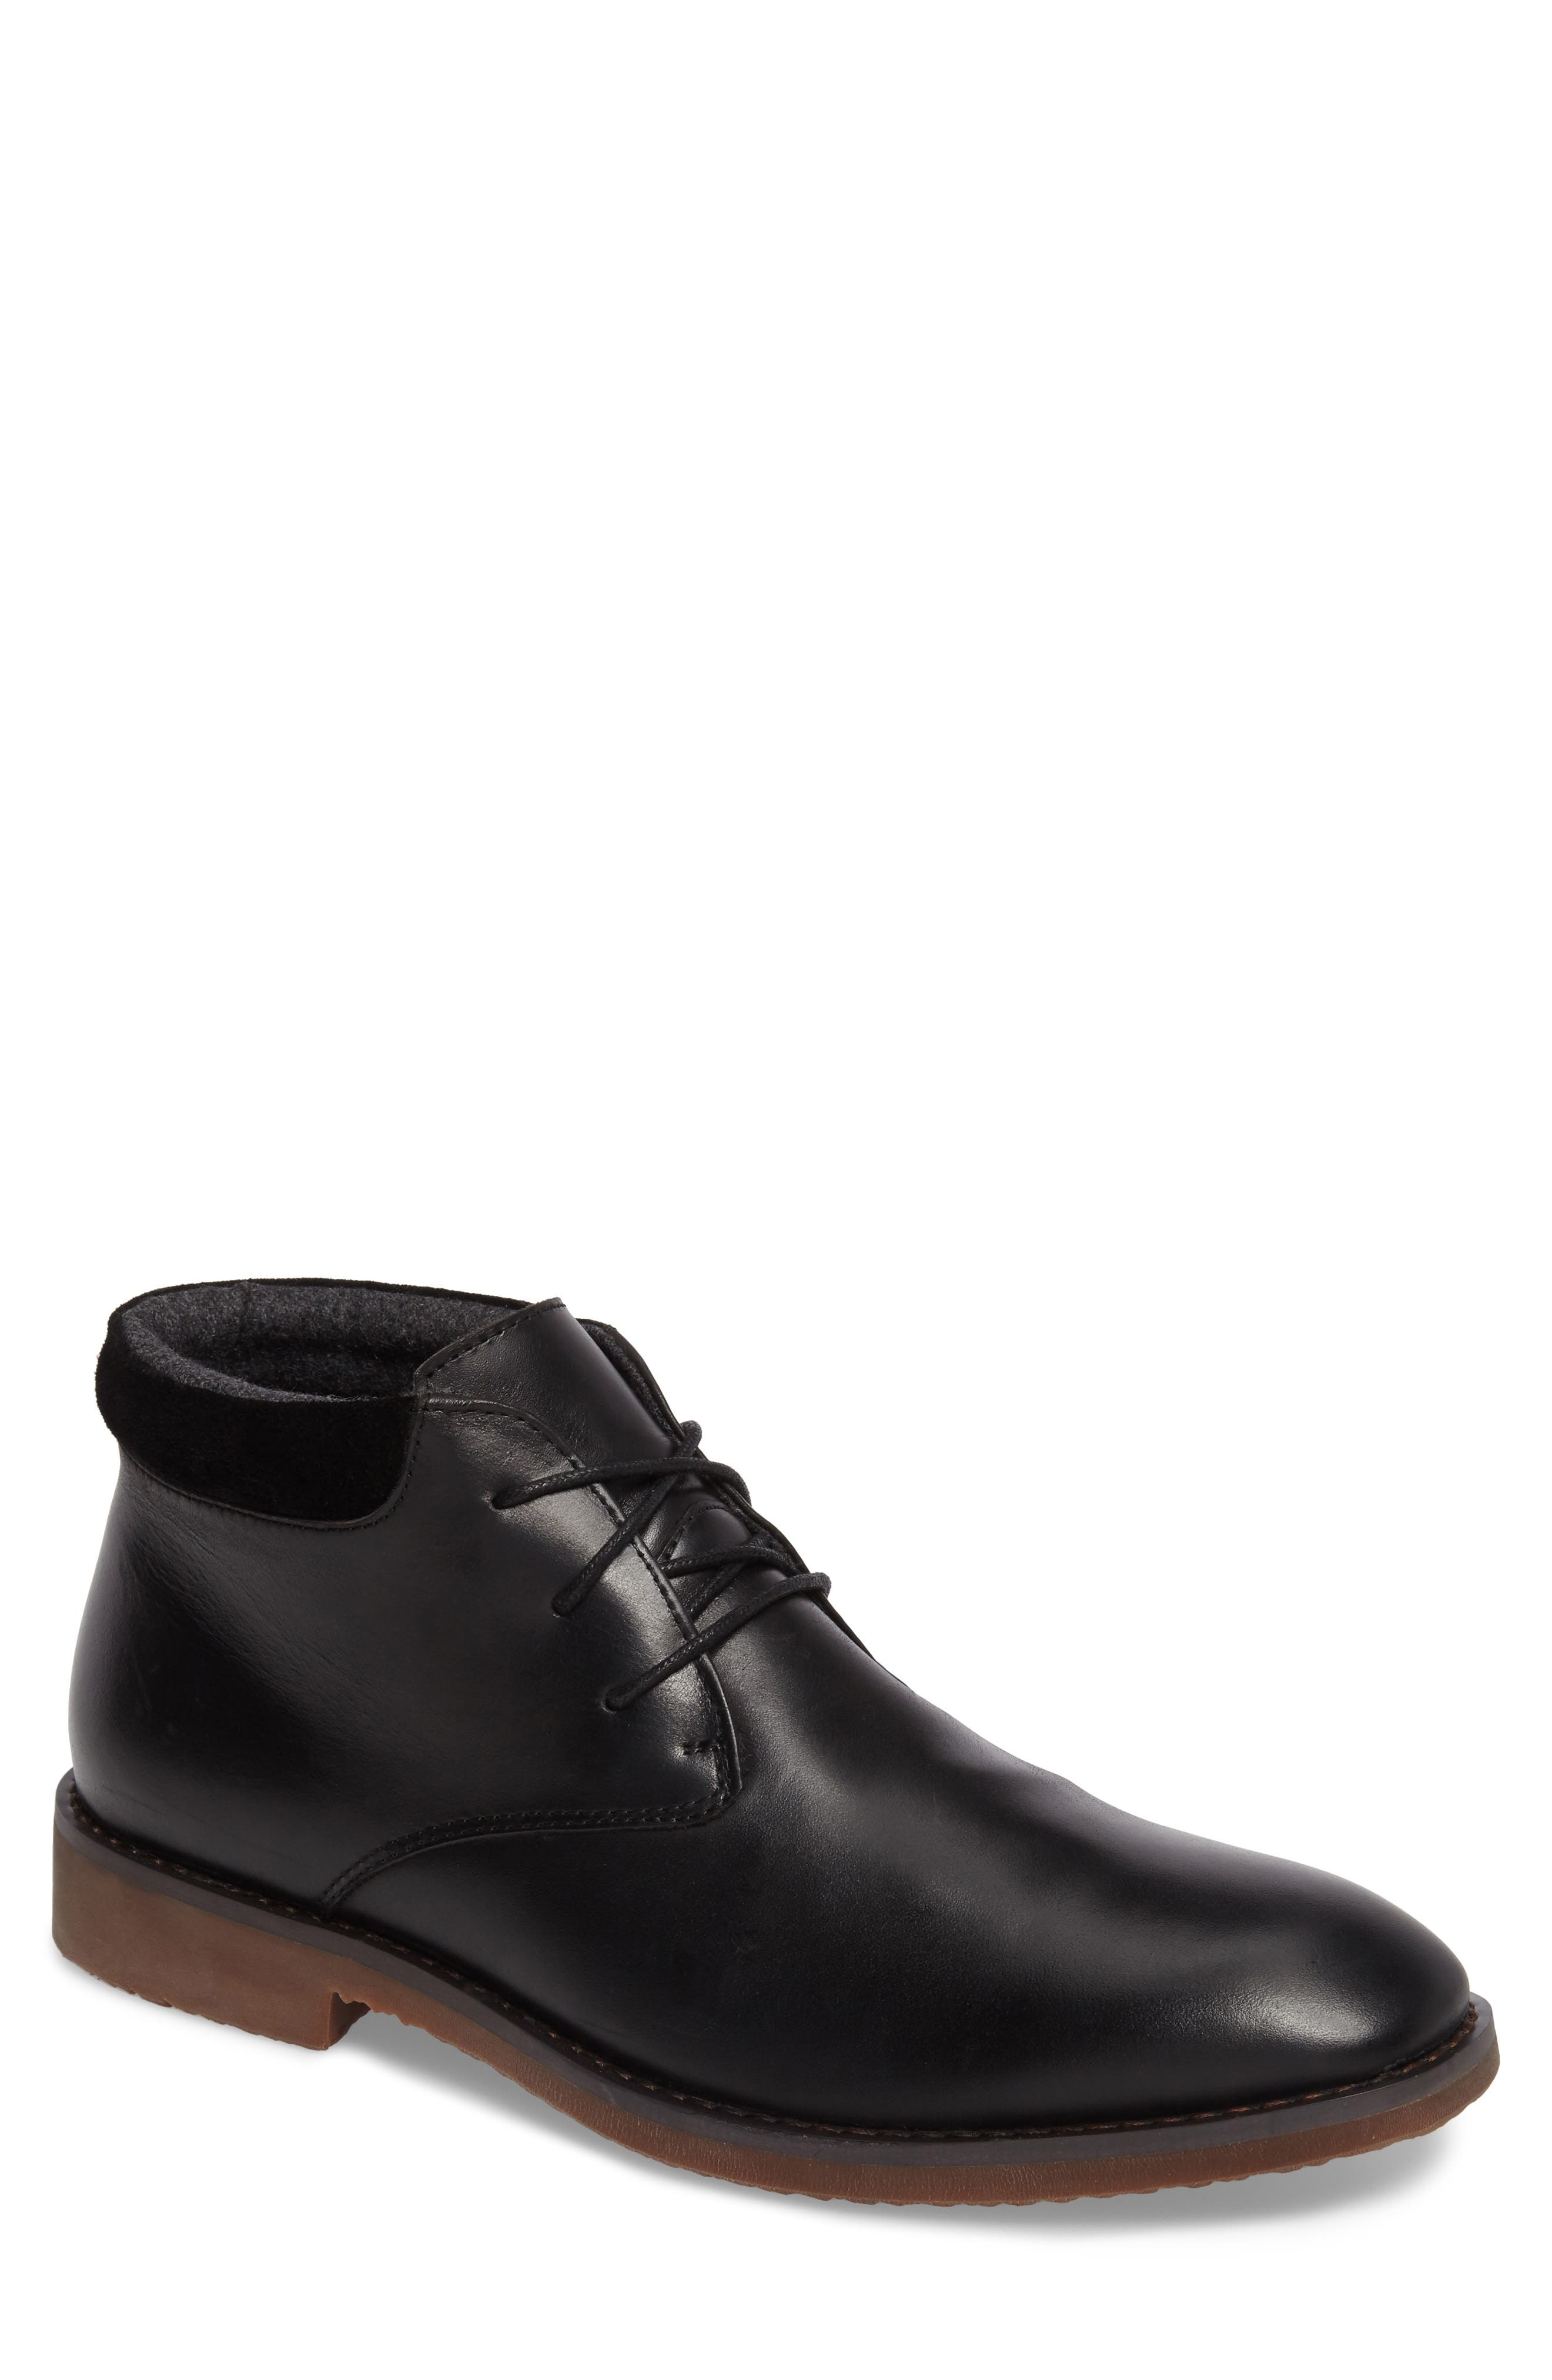 Main Image - English Laundry Talbot Chukka Boot (Men)